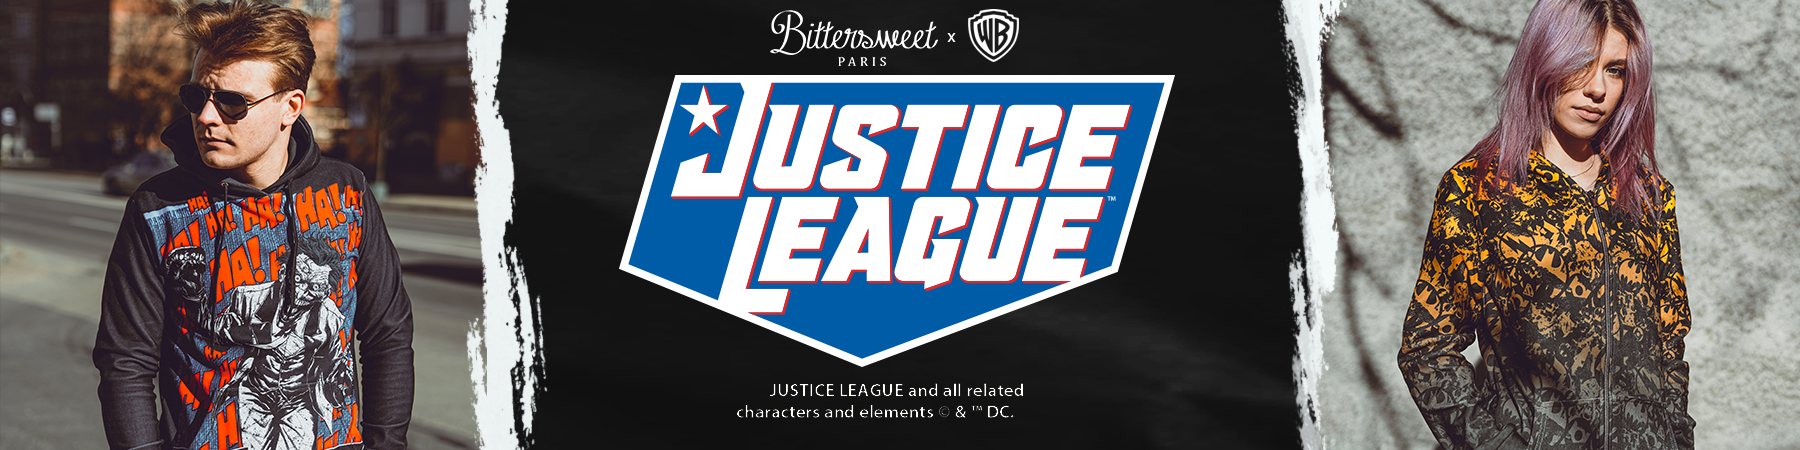 Justice League collection